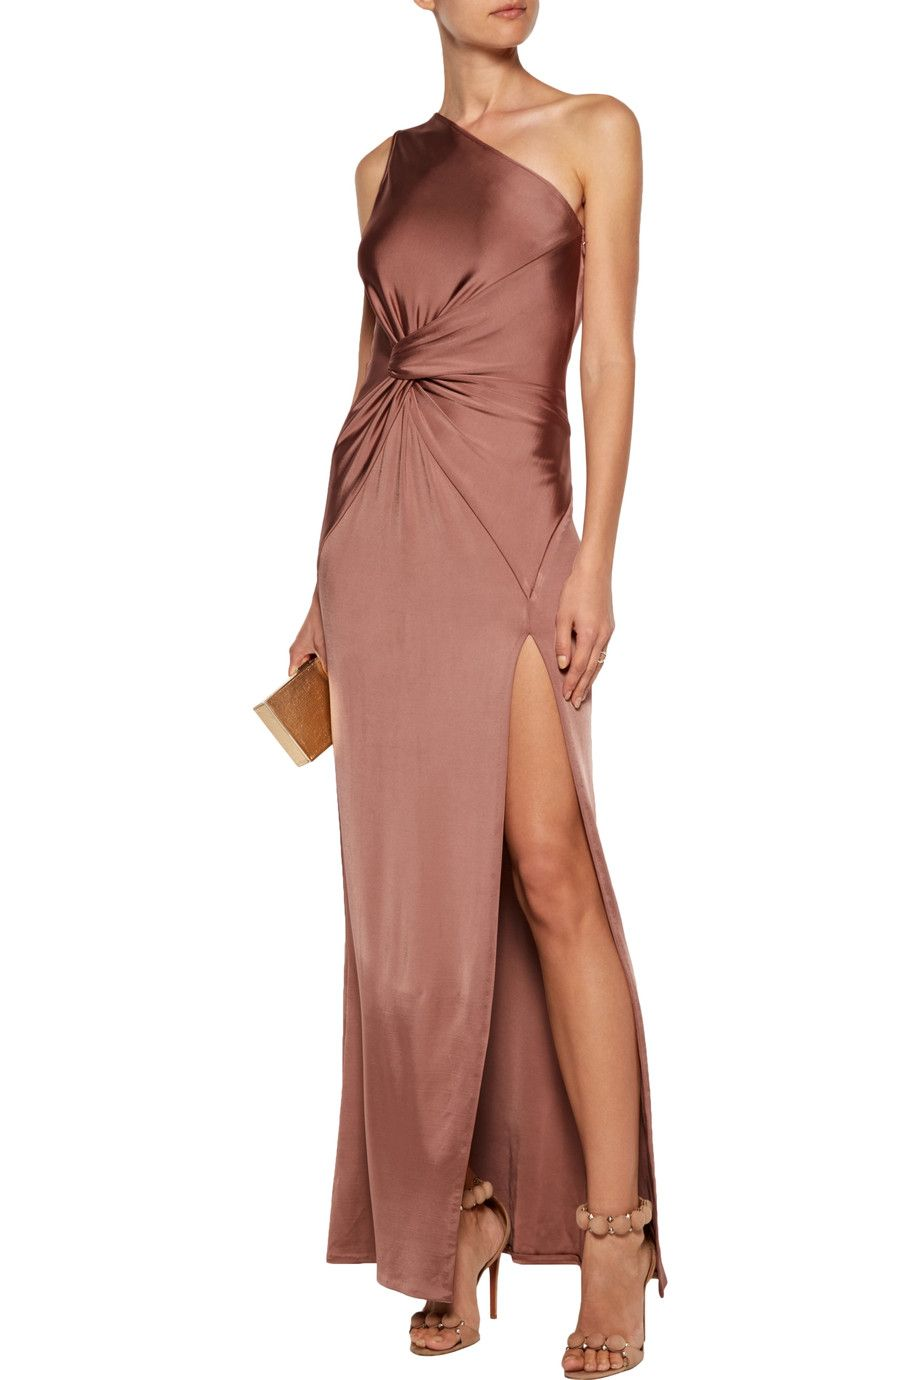 a966fa24843a Shop on-sale Cushnie et Ochs Denise one-shoulder twisted stretch  satin-jersey gown. Browse other discount designer Dresses   more on The  Most Fashionable ...